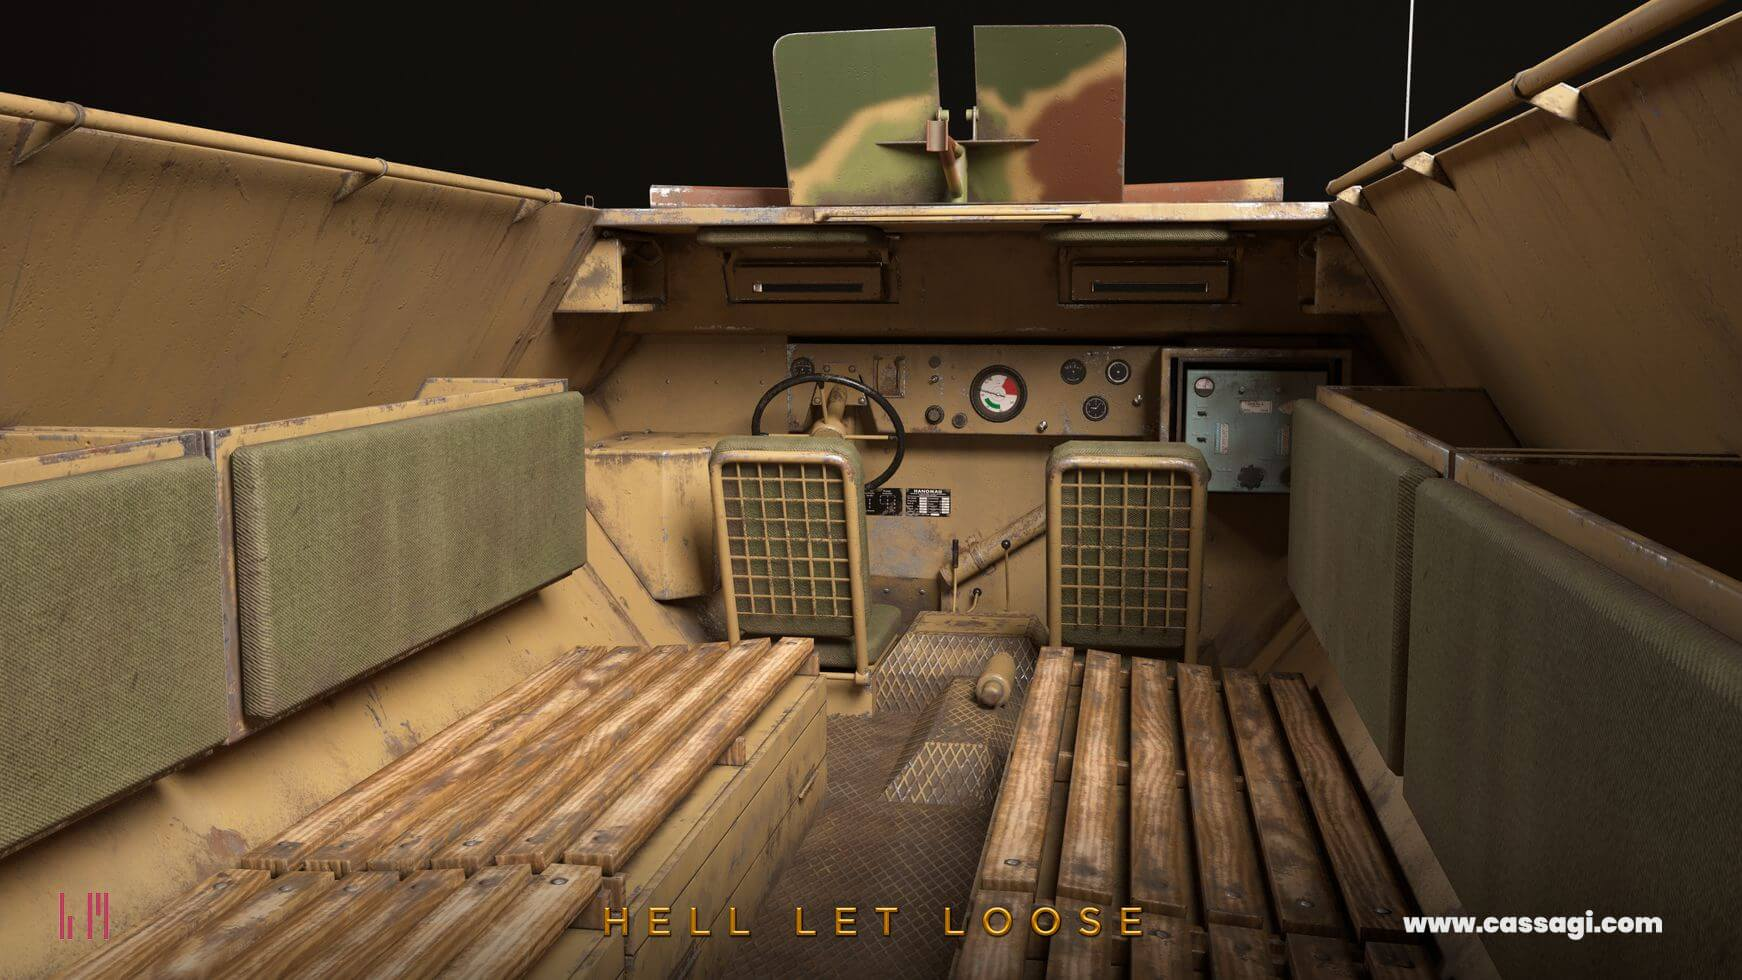 hell let loose Sdkfz 251 interior in game model